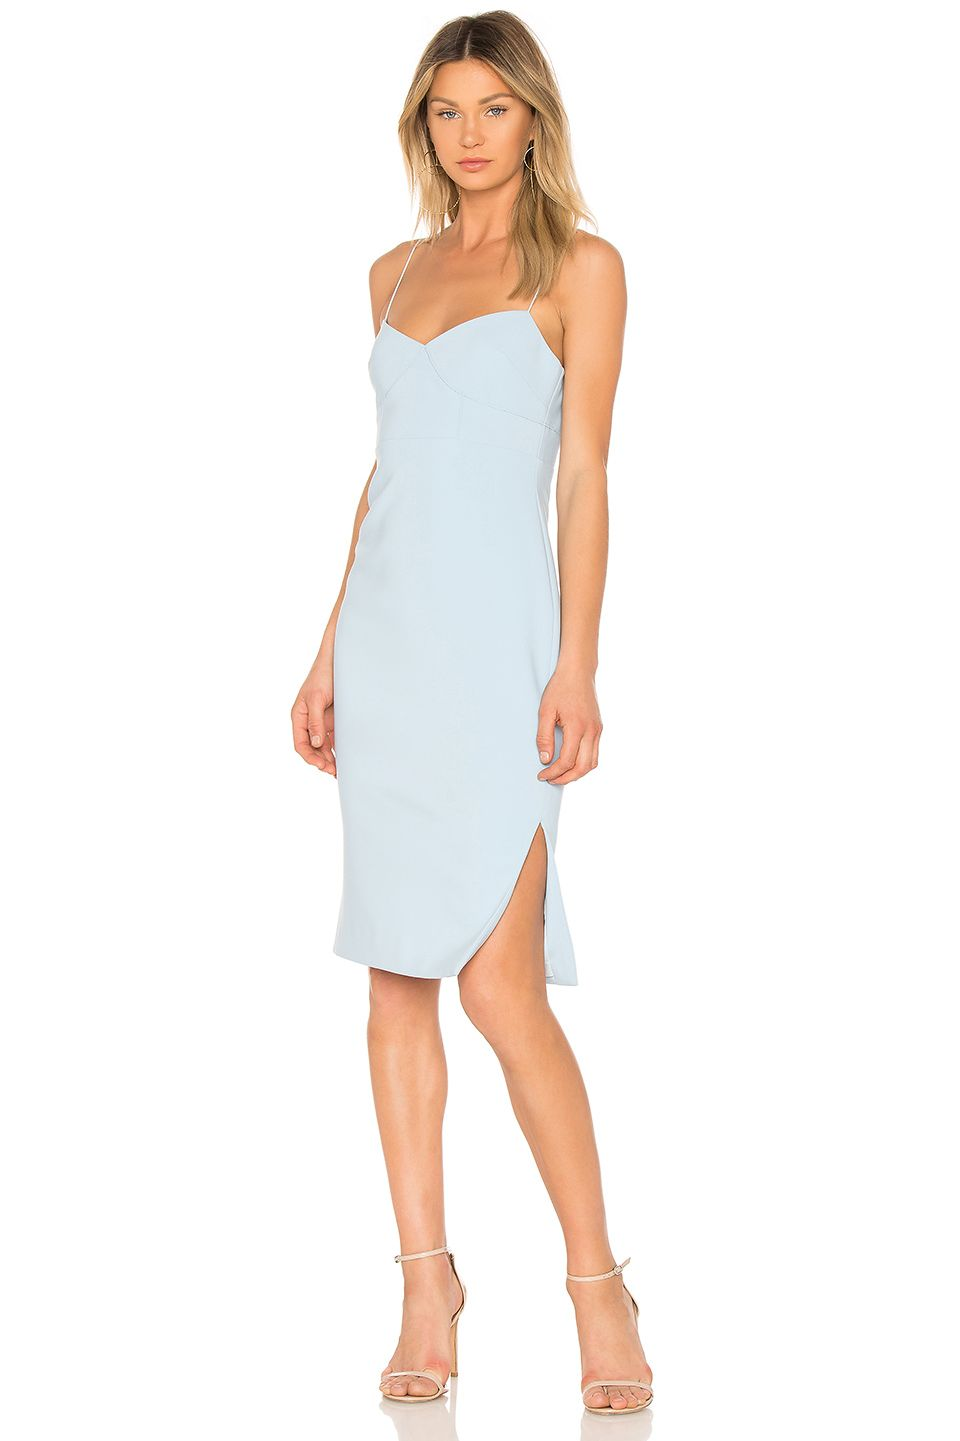 Best for Being Understated Spaghetti-Strapped Pastel Dress LIKELY revolve.com $188.00 SHOP IT I'm all for effortless dressing and, damn, if this style from Finders Keepers isn't the definition of that. The thin straps and slit details aren't flamboyant, but rather, provide a delicate, feminine touch.